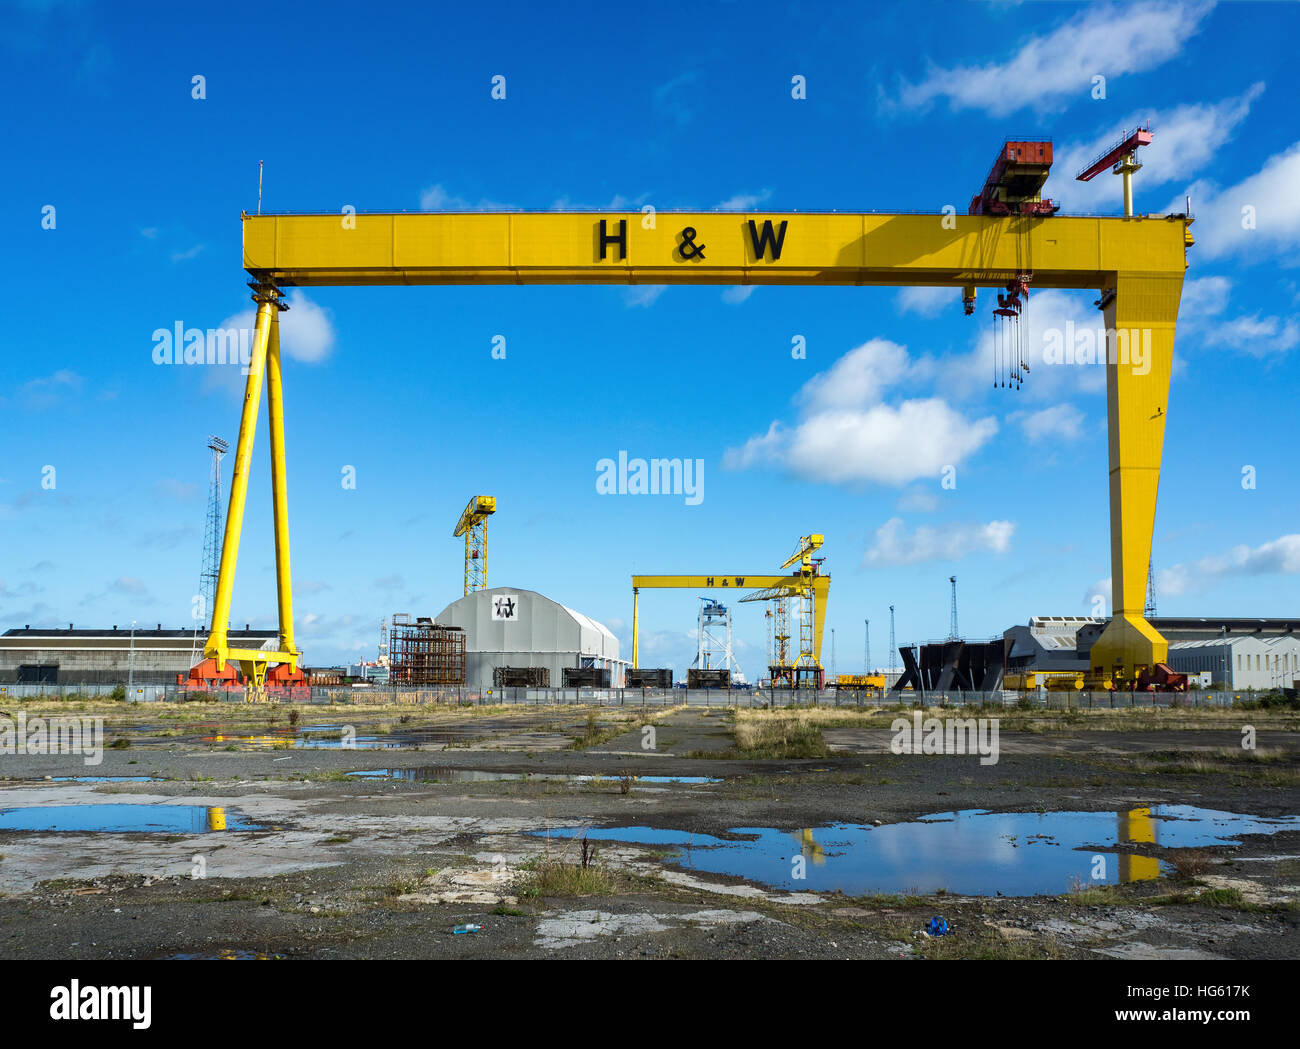 Samson and Goliath. Twin shipbuilding gantry cranes in Titanic quarter, famous landmark of Belfast - Stock Image